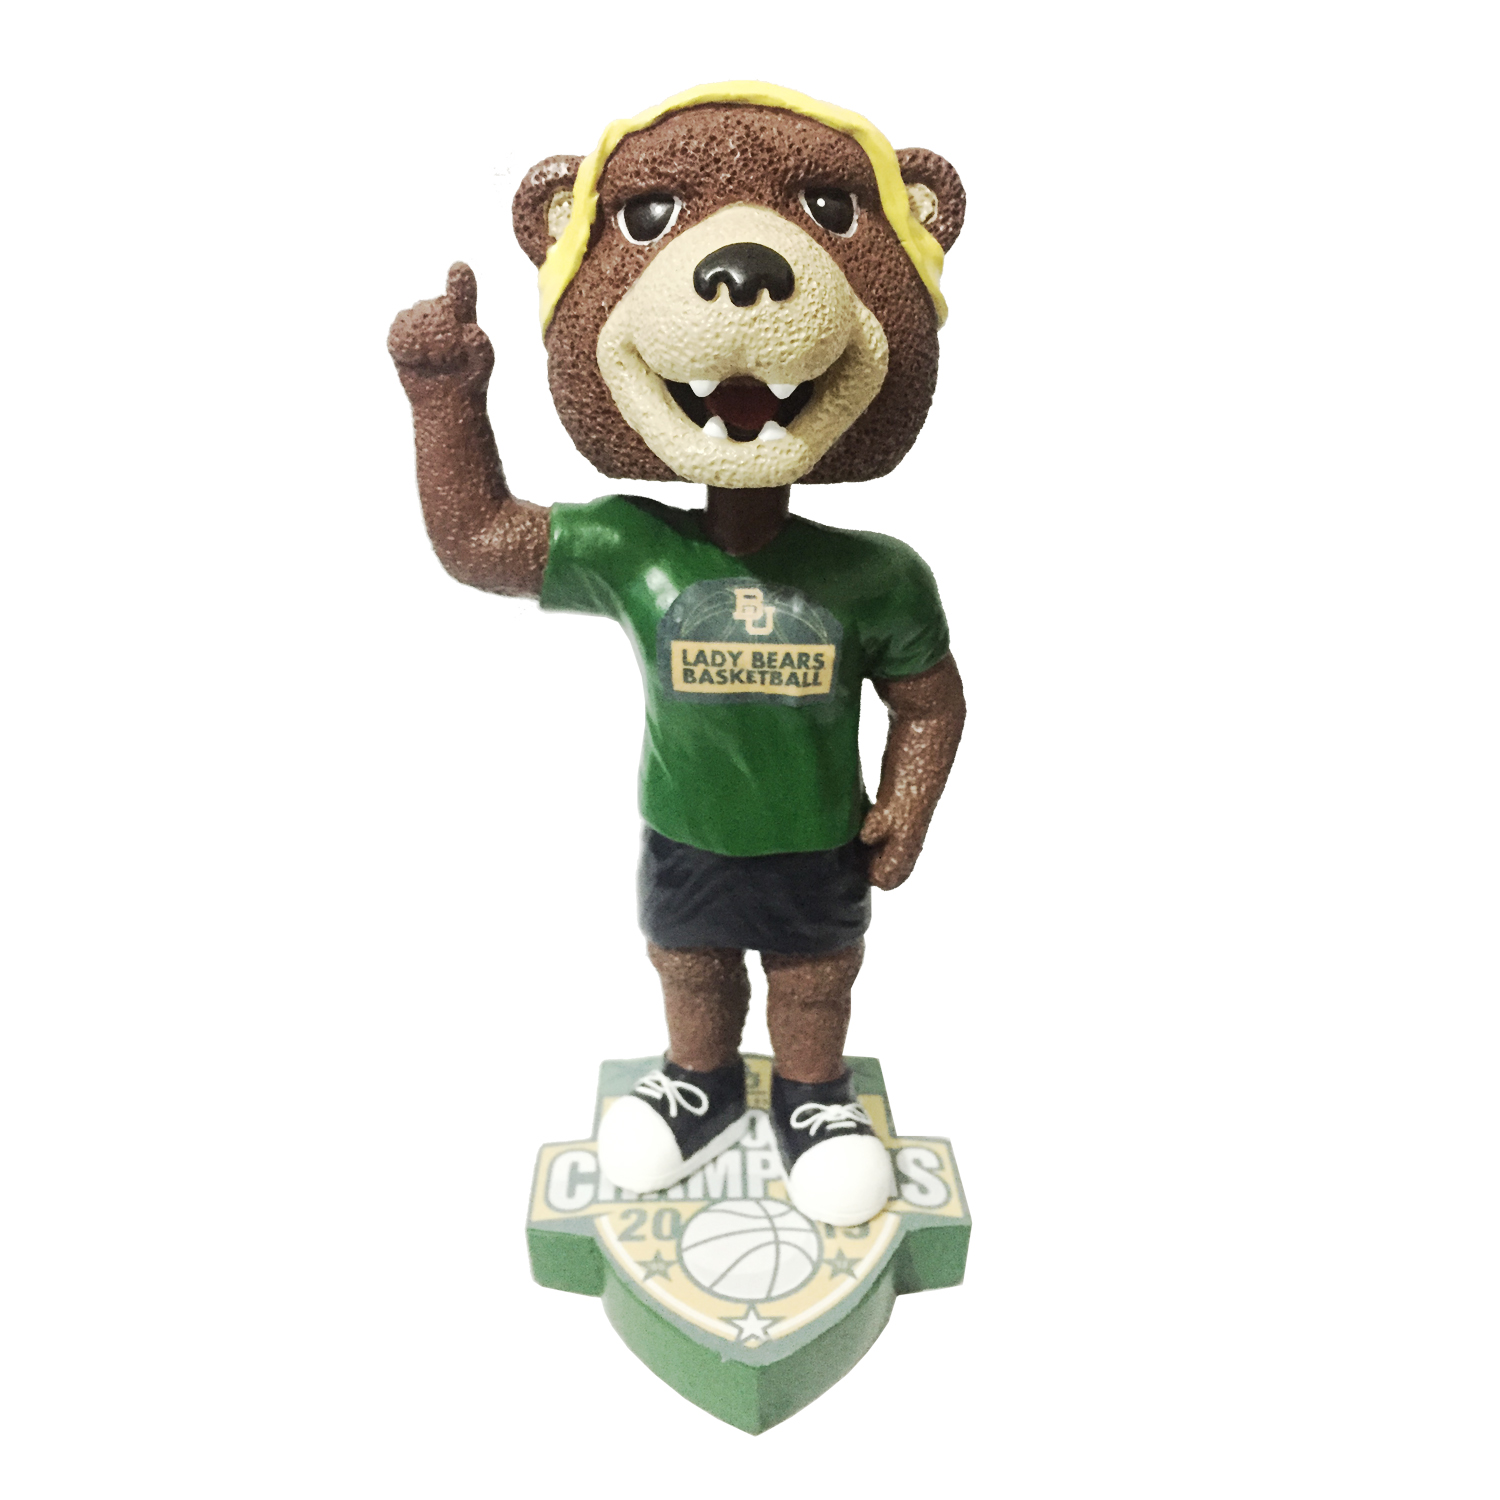 Baylor University Lady Bears 2019 National Champions Bobblehead